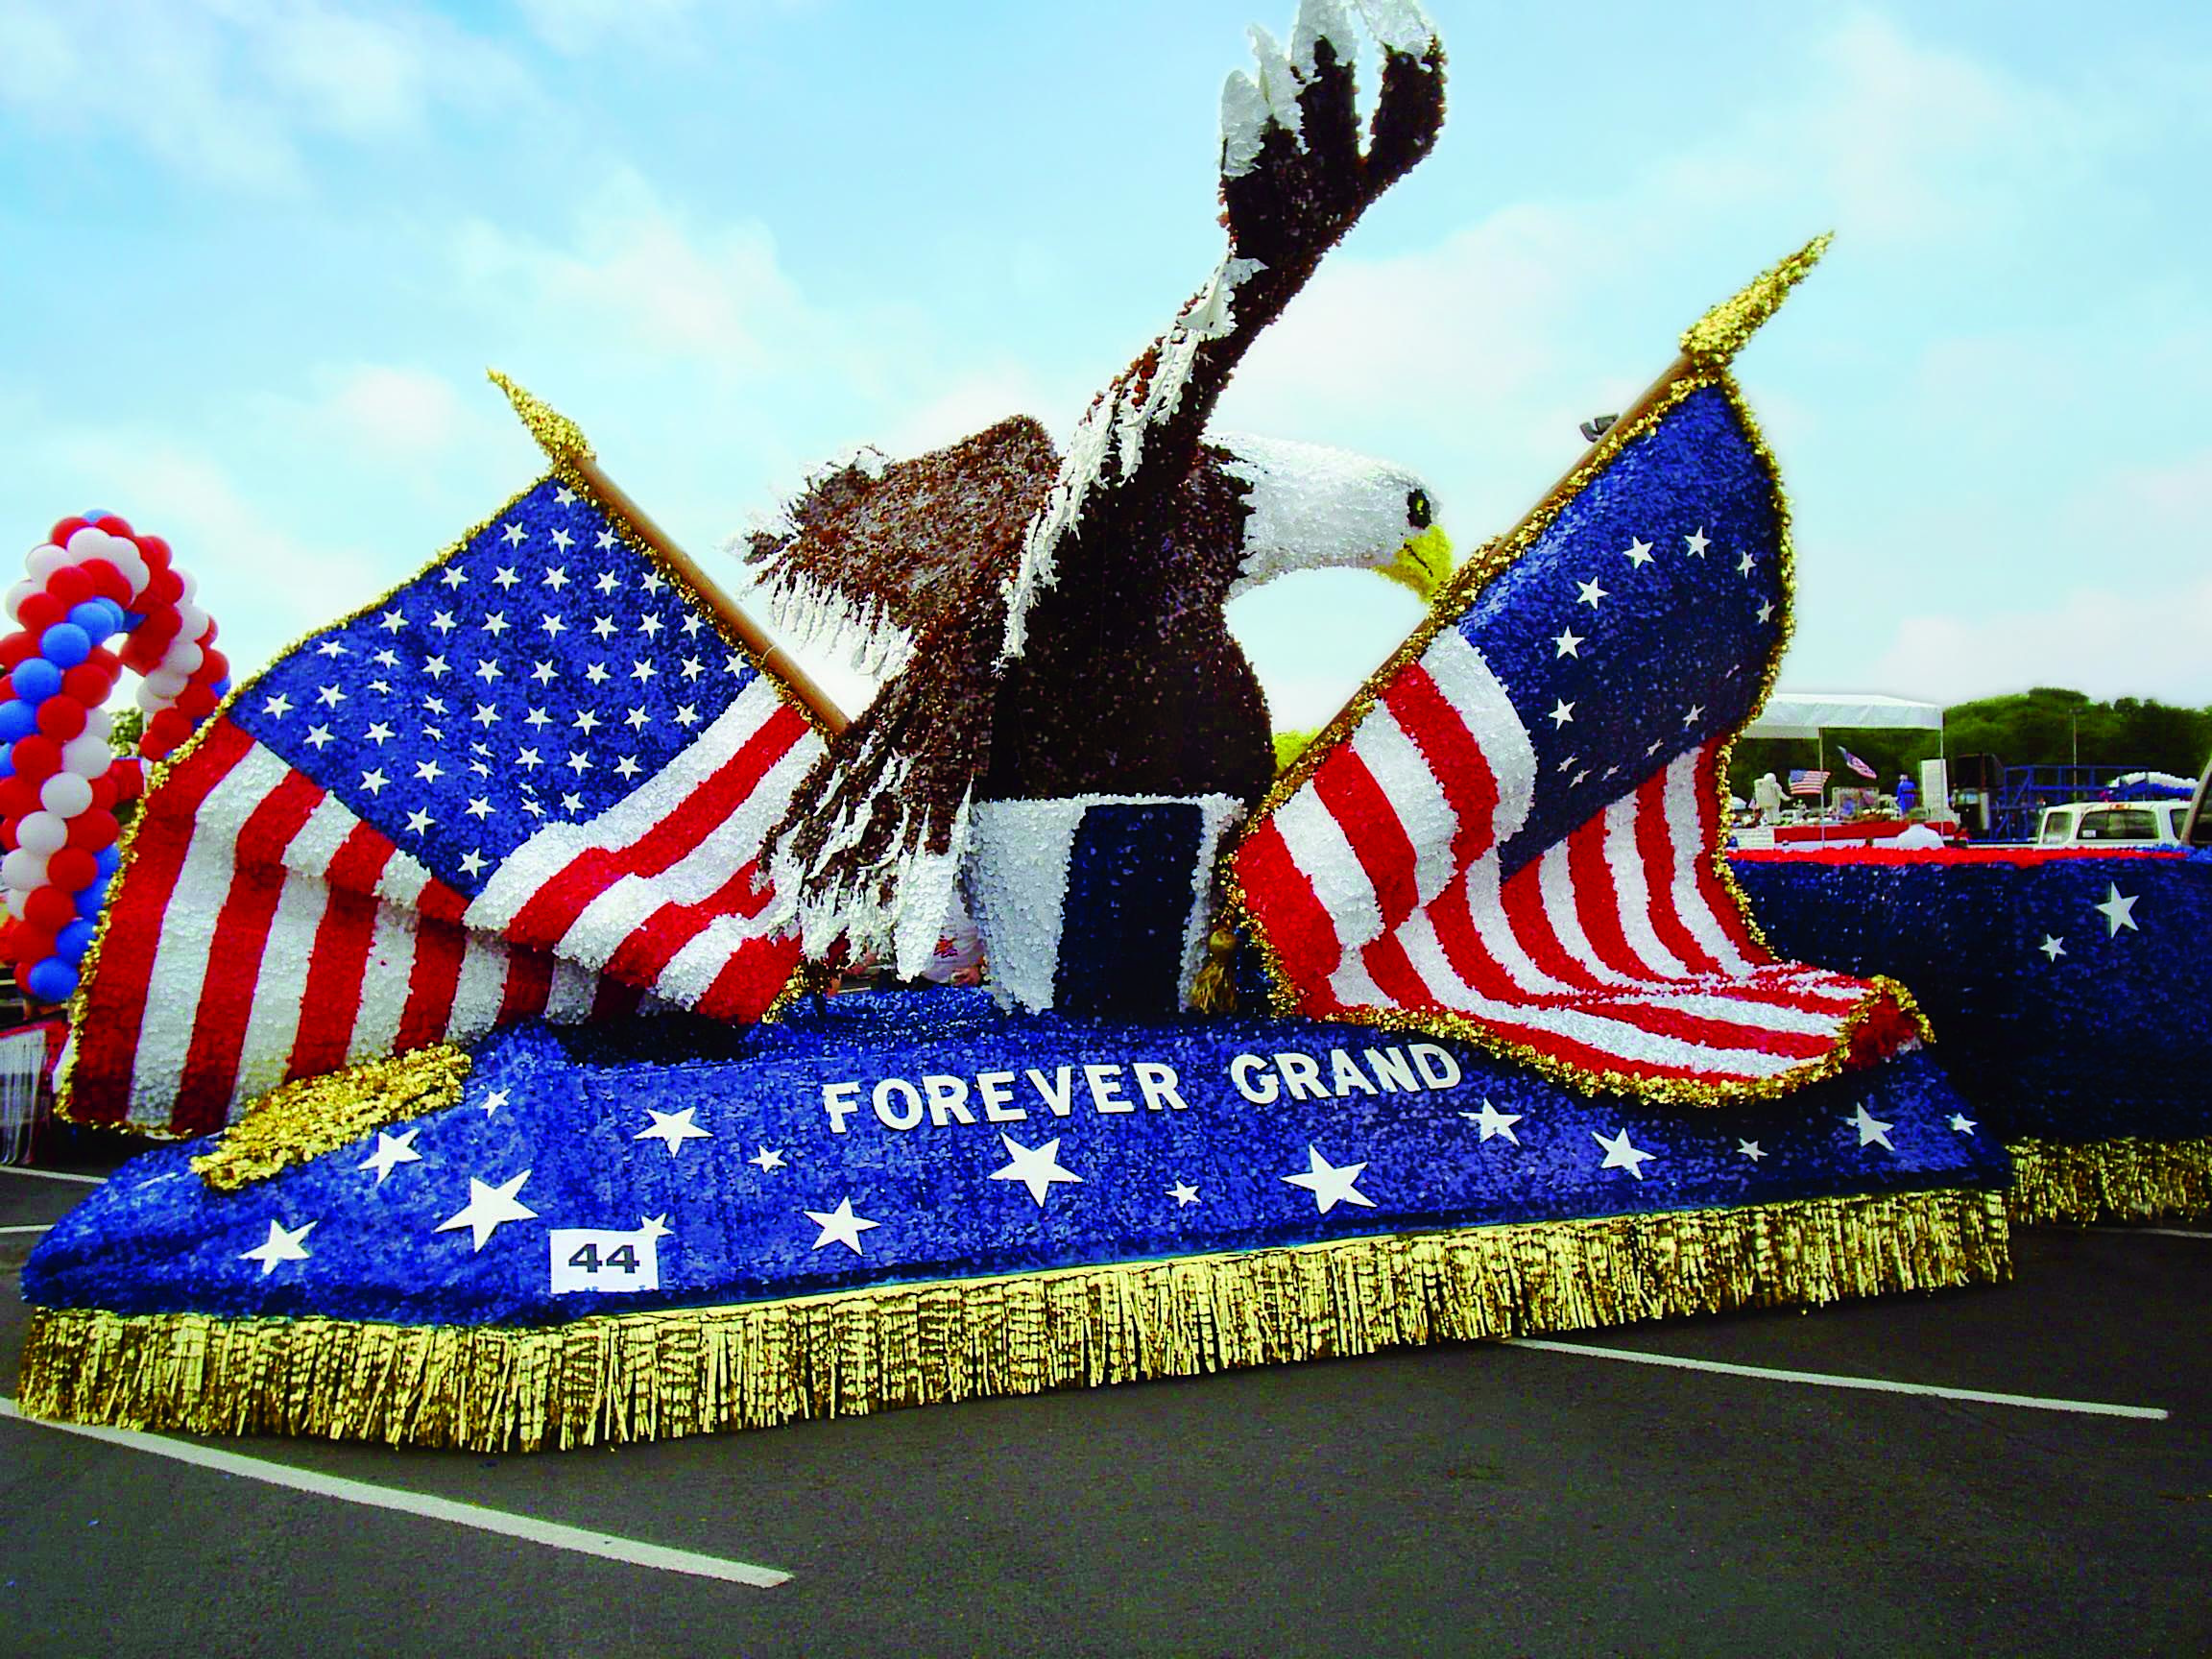 Flags & Eagle Parade Float Create Unique 4th Of July. Tools Needed To Finish A Basement. How To Deodorize A Basement. Landscaping To Prevent Water In Basement. Basement Floor Cleaner. Basement Suit. Decorating Basement Apartment. Nj Basement Waterproofing. Basement Cost Per M2